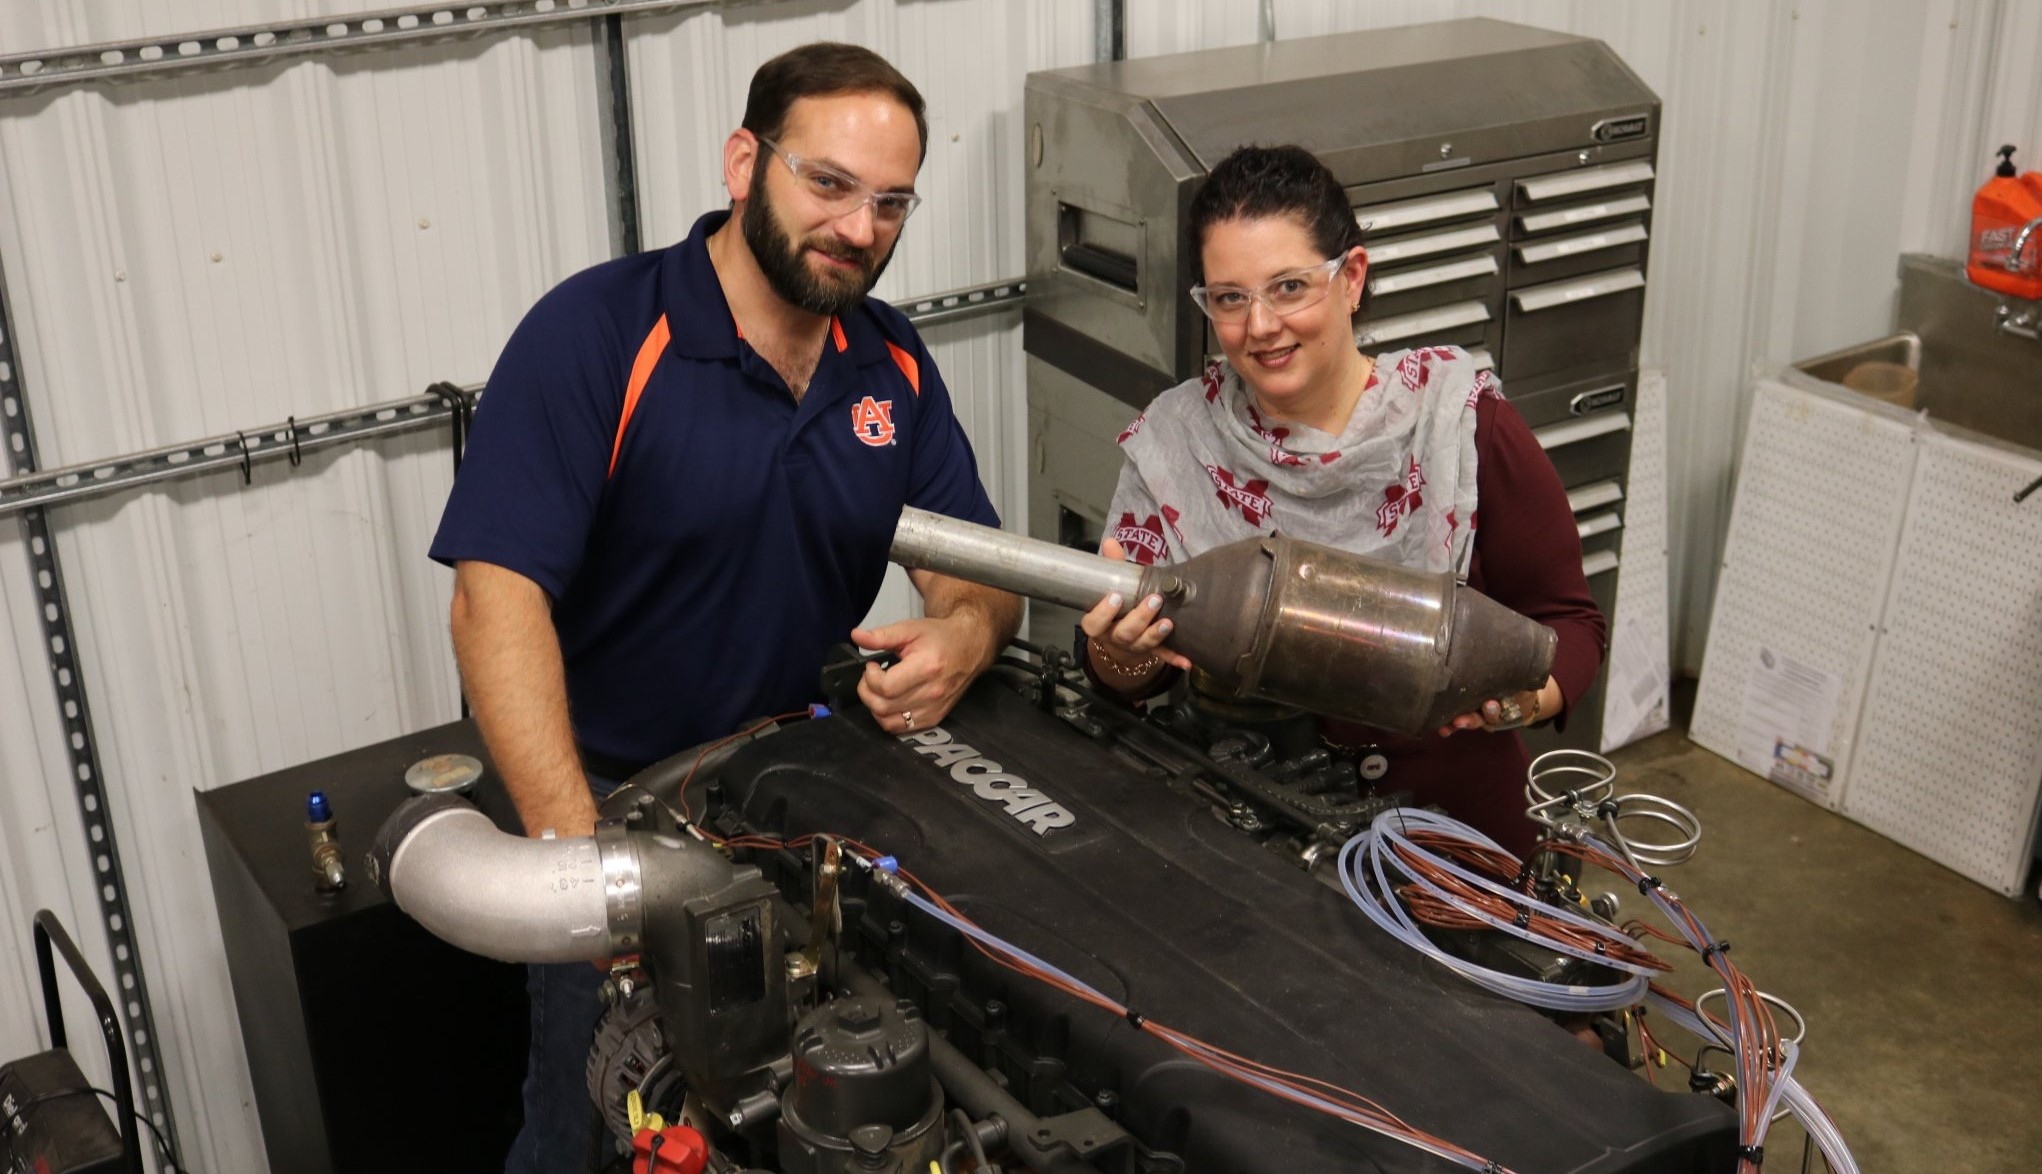 (Credit: @ProfessorStrz)